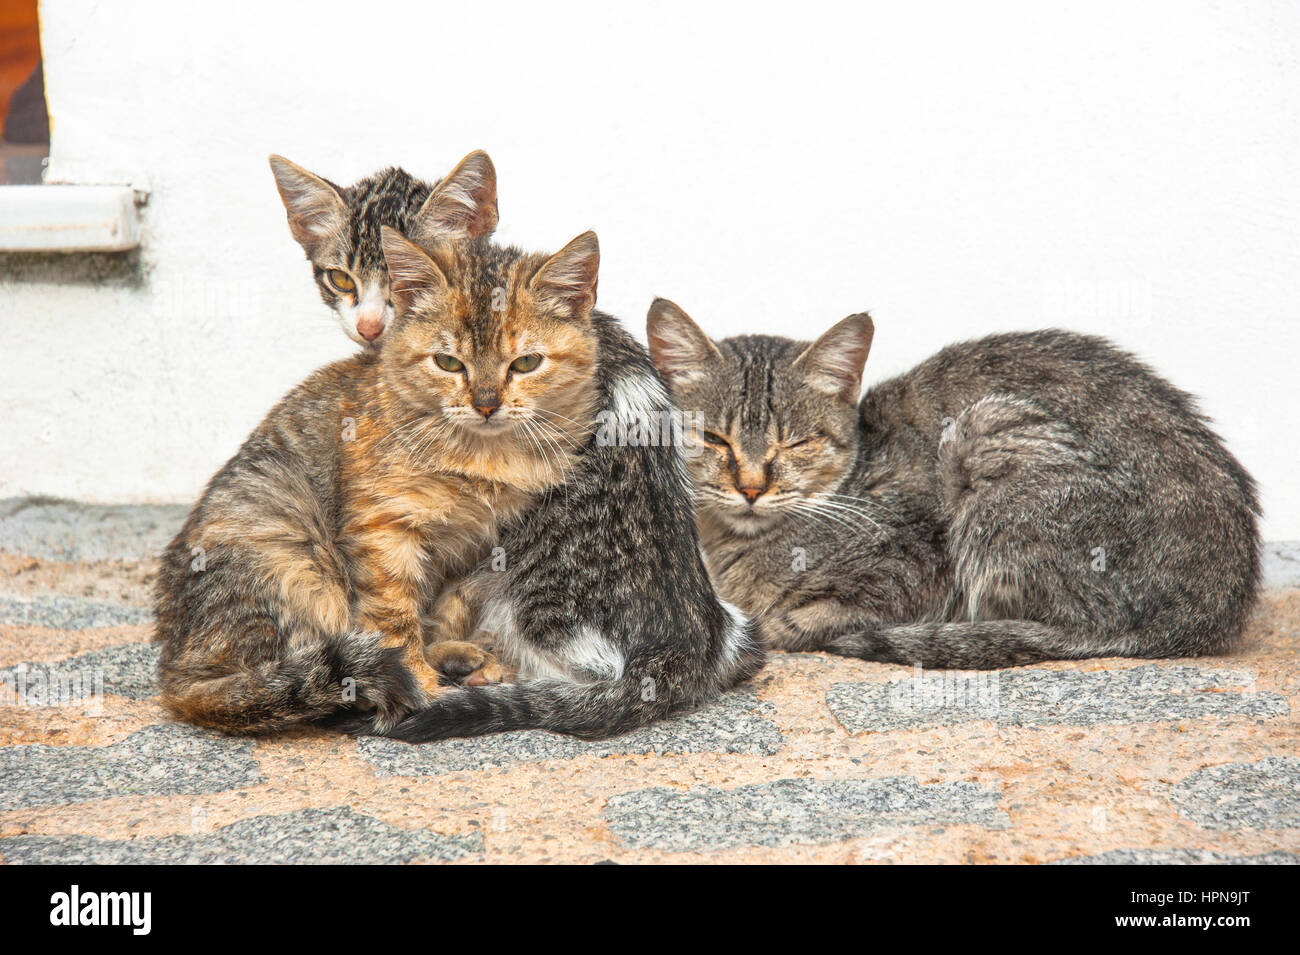 three cute, young, sleepy cats in the street, snuggling together - Stock Image